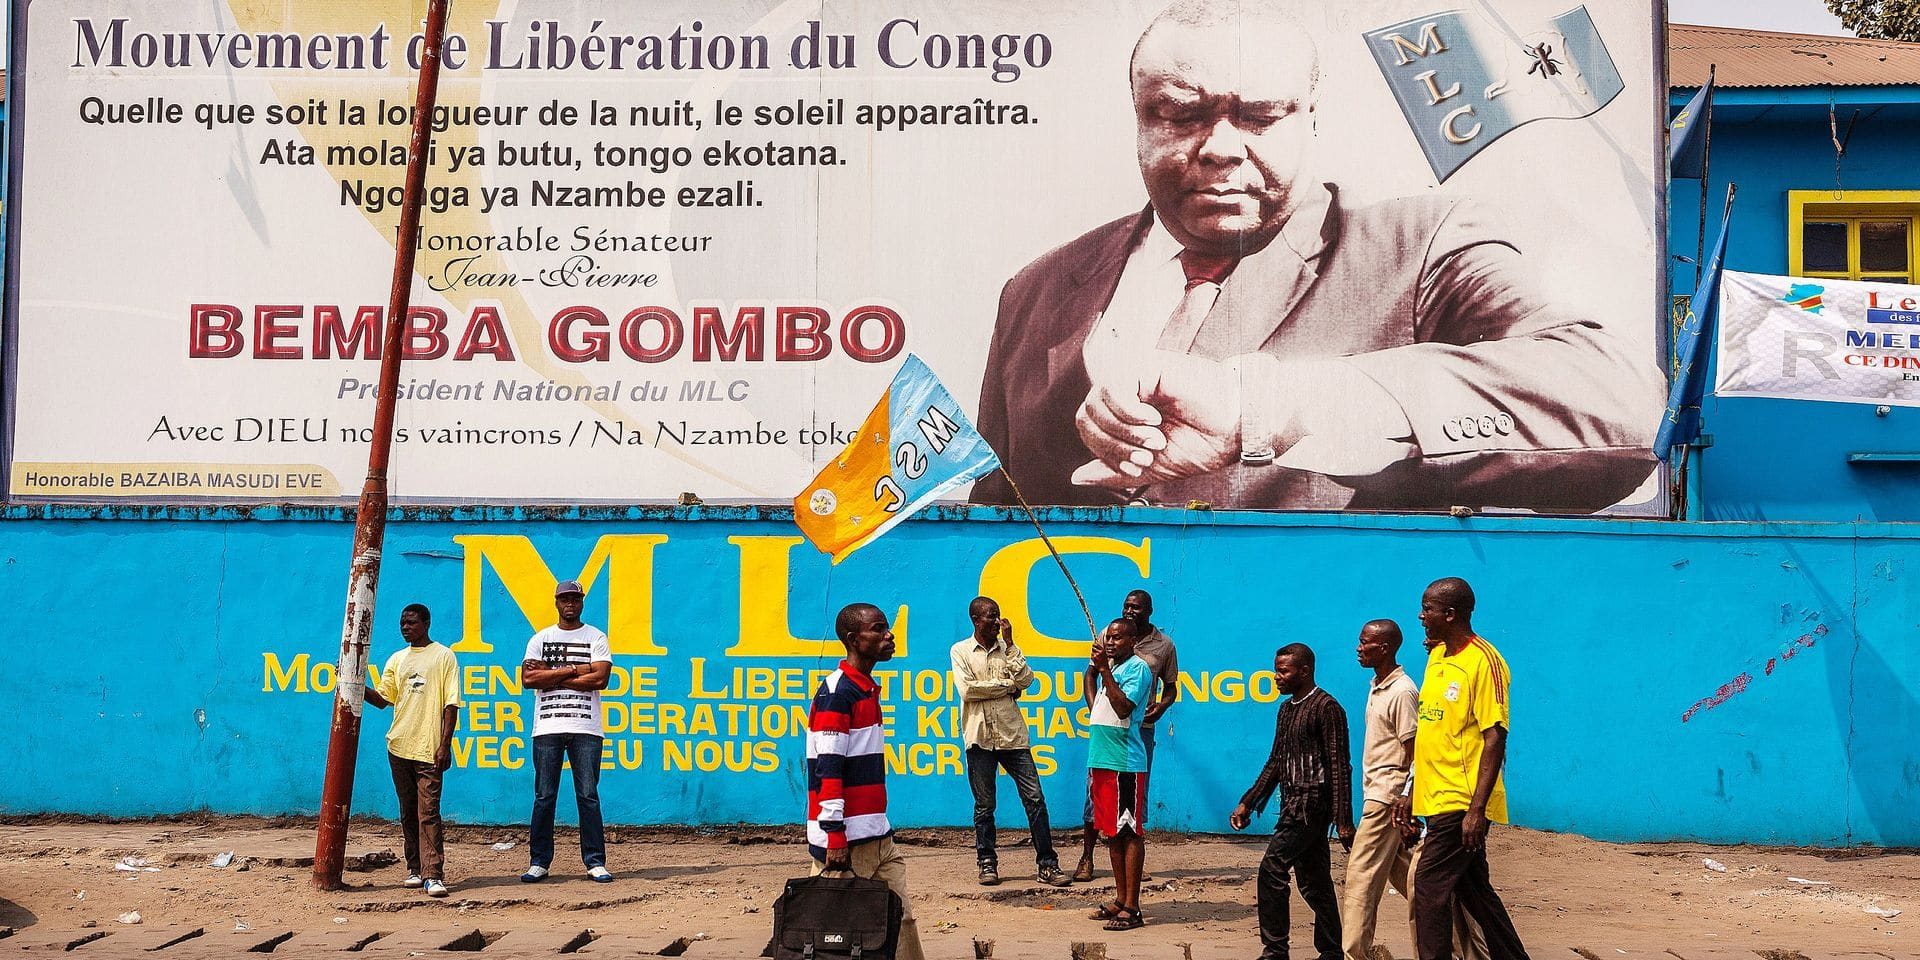 """Opposition supporters gather under a billboard of Movement for the Liberation of the Congo (MLC) leader Jean-Pierre Bemba Gombo before a rally organised by political opposition parties in Kinshasa on July 31, 2016. Congo's veteran opposition chief Etienne Tshisekedi on July 31 called for elections to be held this year and for President Joseph Kabila to step down as scheduled on December 20. Tensions have been growing in the mineral-rich but troubled state over fears that Kabila, in power since 2001, may try to extend his rule with a third term, beyond the constitutional maximum of two. Speaking at a rally in Kinshasa, Tshisekedi warned him not to try, saying it would be """"high treason"""" if the electoral process were not launched on schedule in September. / AFP PHOTO / Eduardo Soteras"""